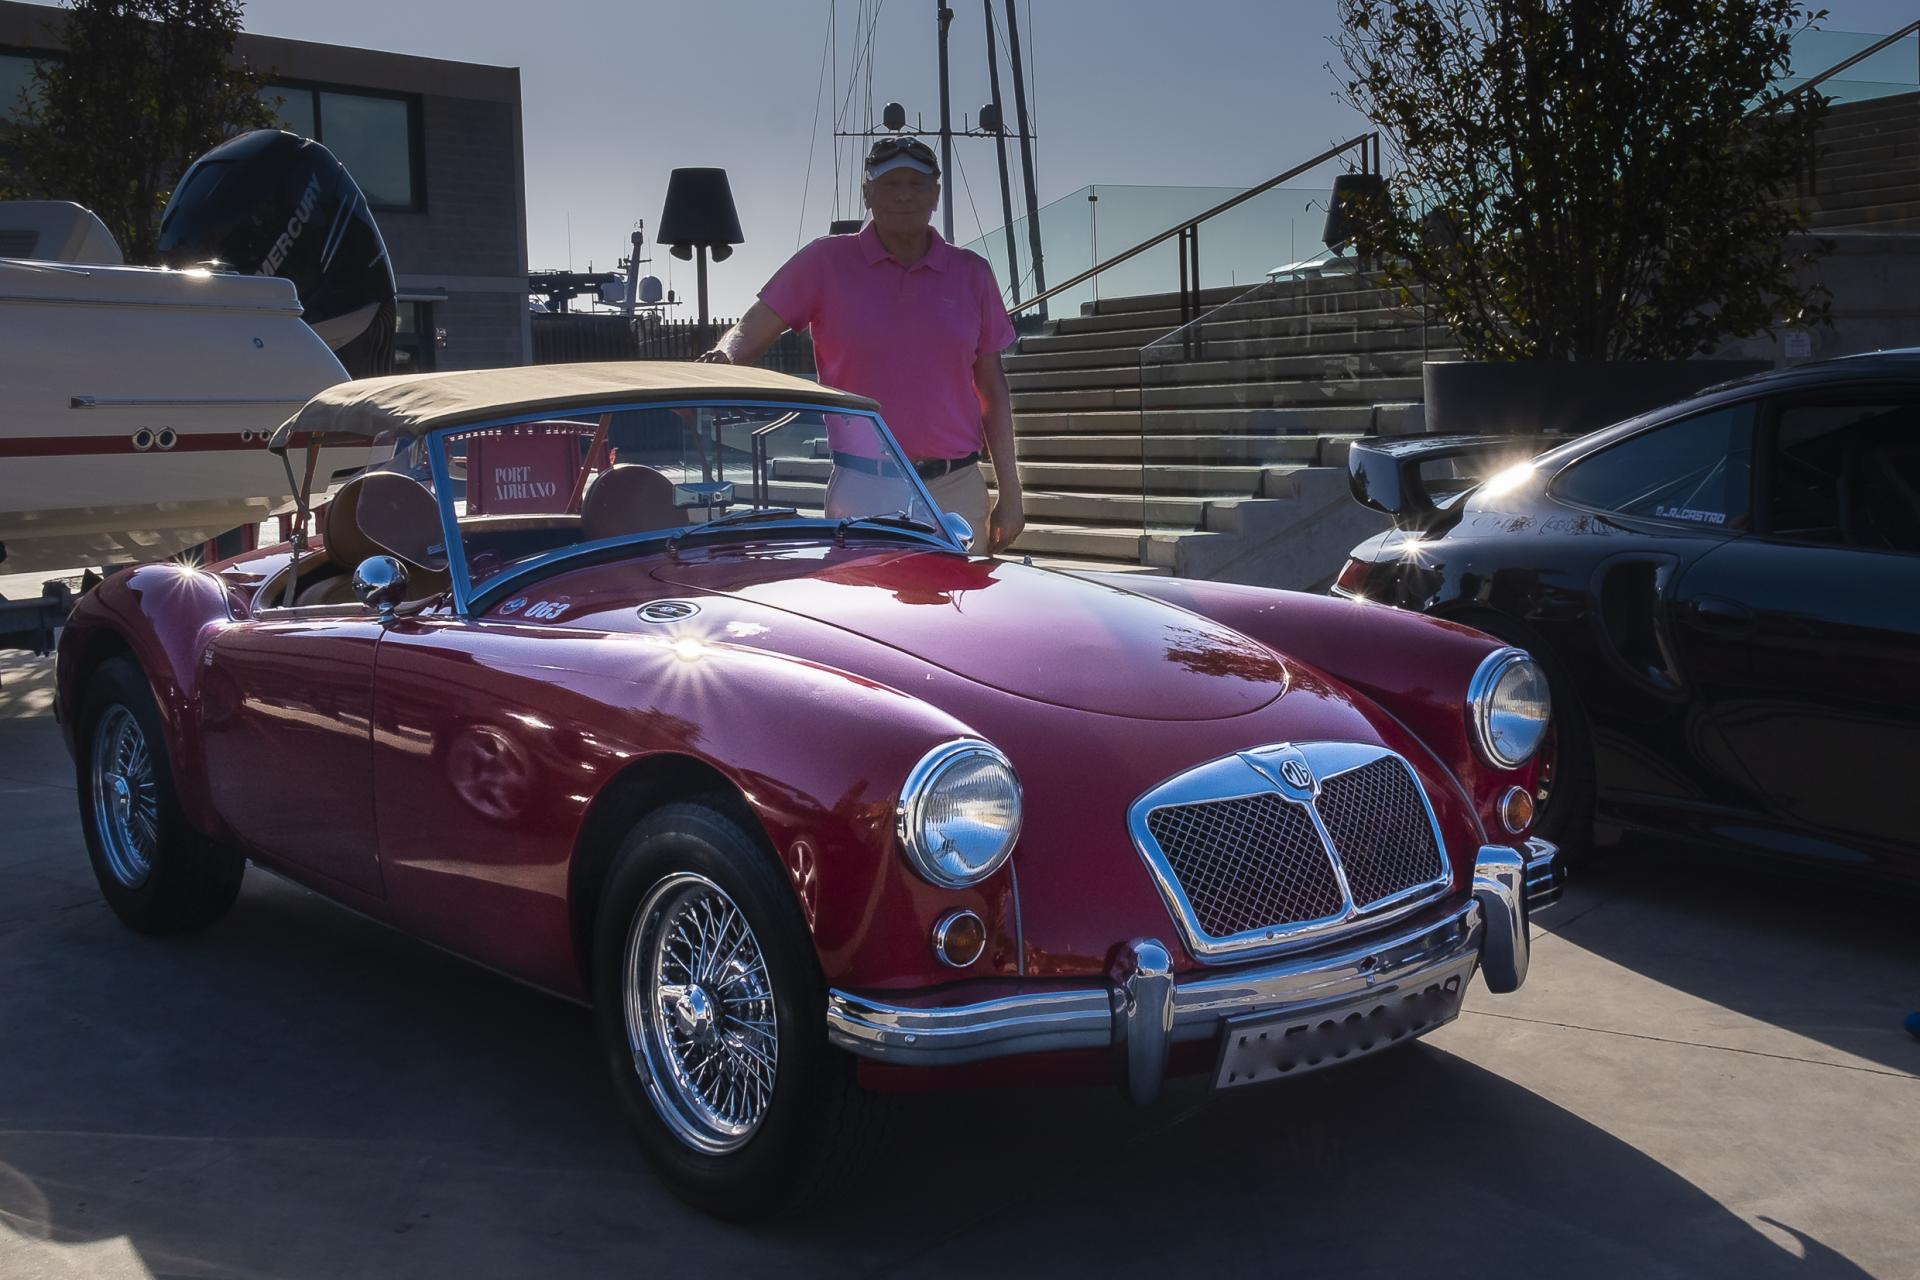 A proud owner with his gorgeous MG at the Thursday weekly meetup